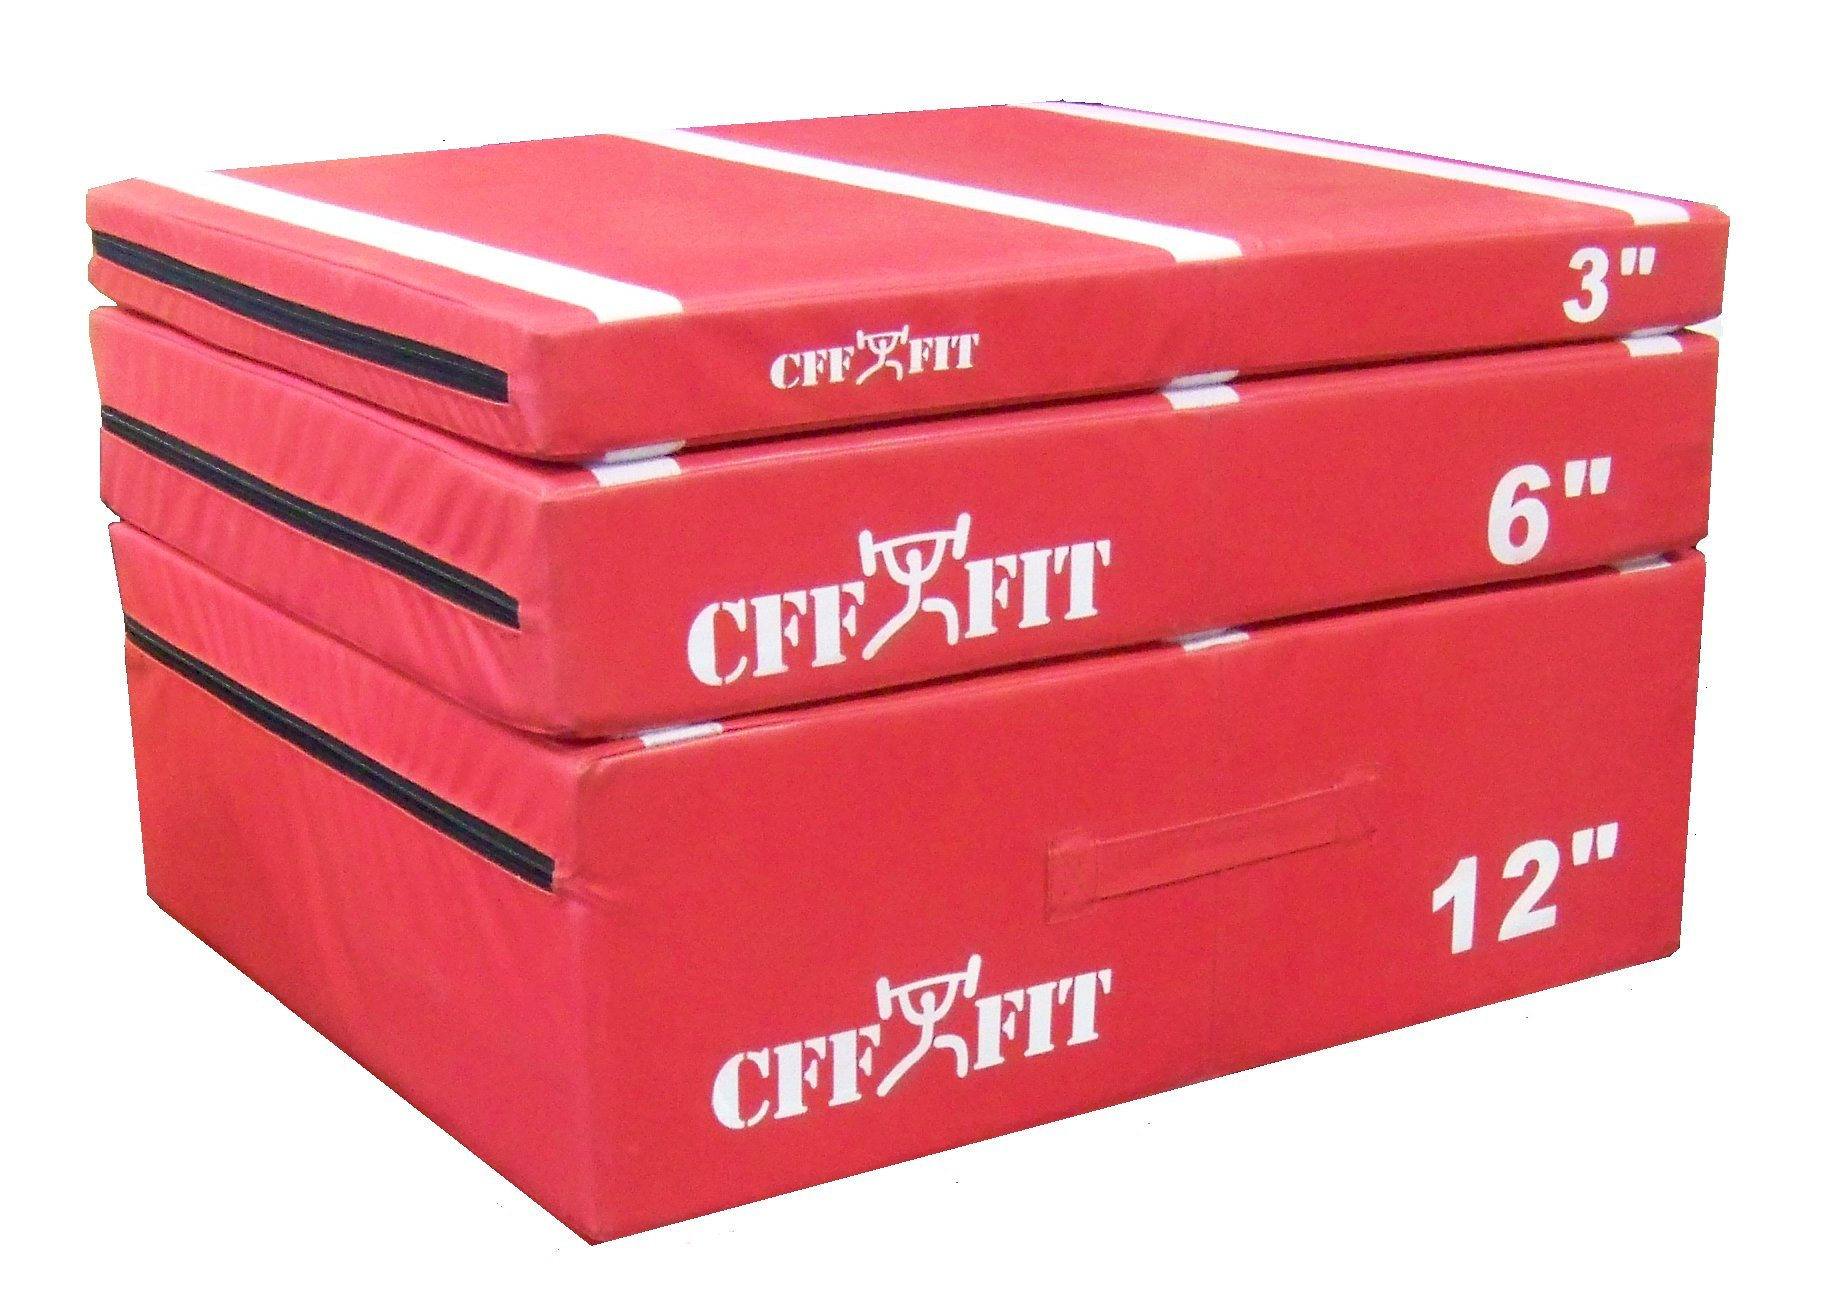 CFF Cushion Plyo Boxes (Set 3''-6''-12'') by CFF FIT (Image #1)